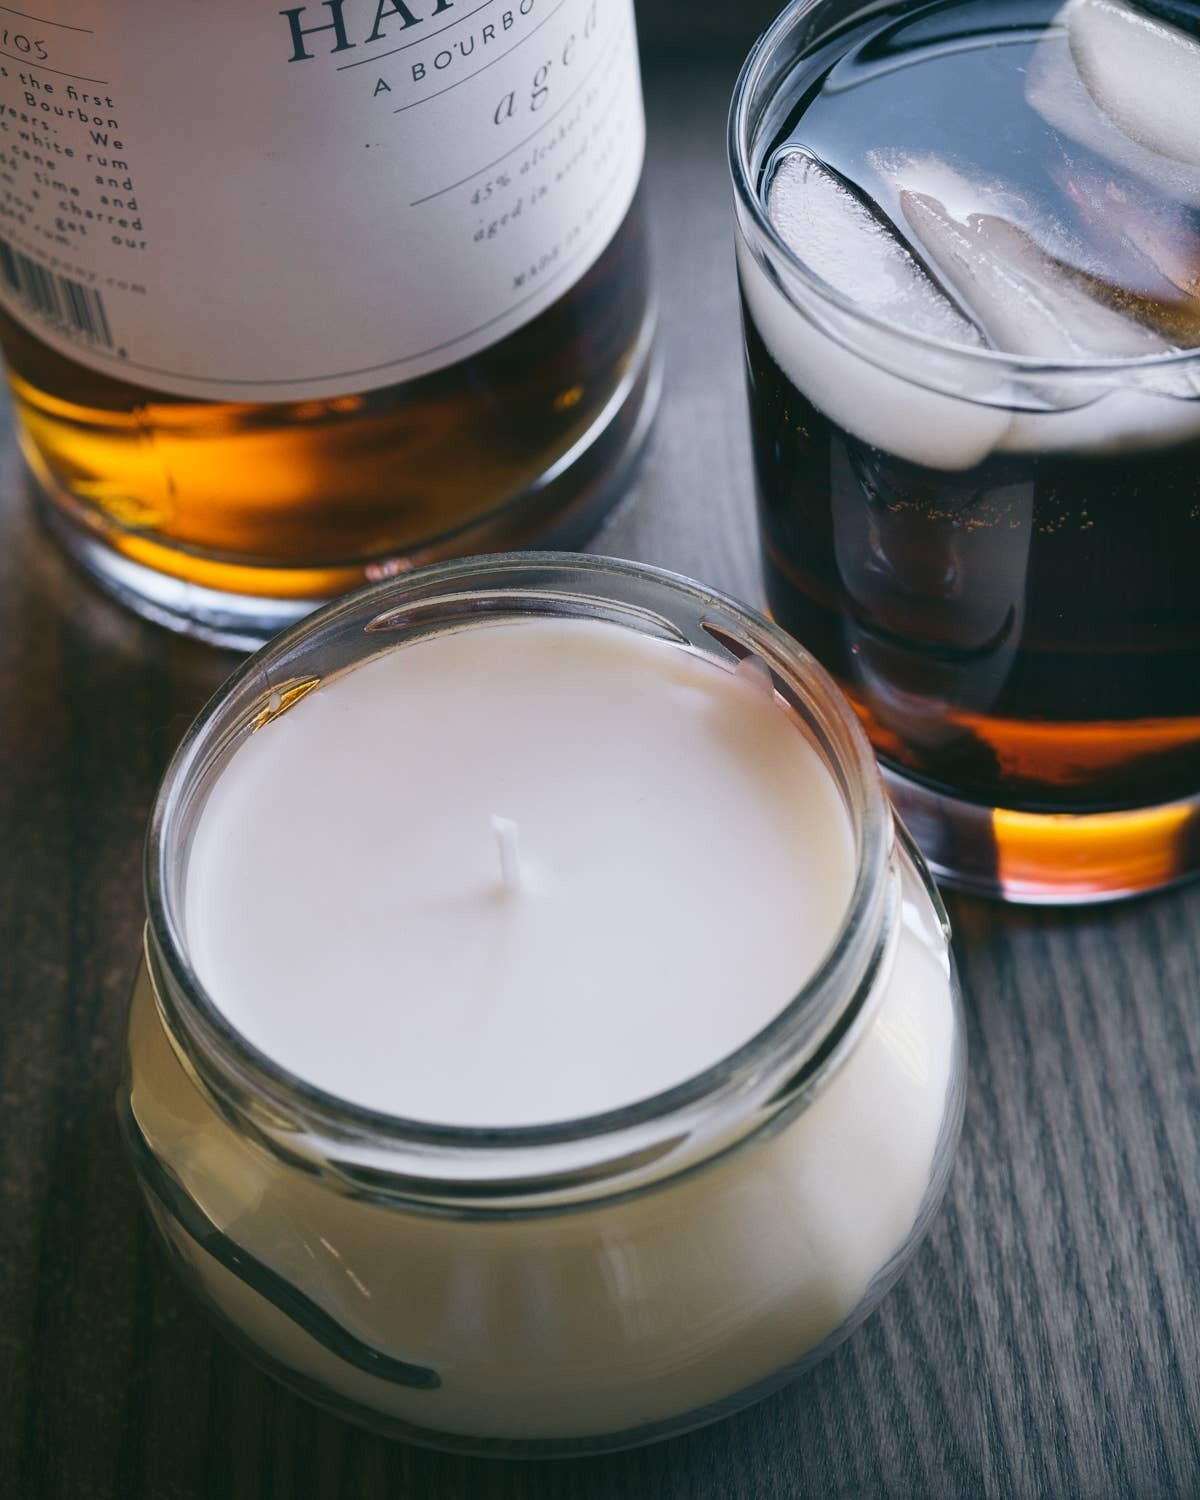 Bluegrass Bourbon Candle